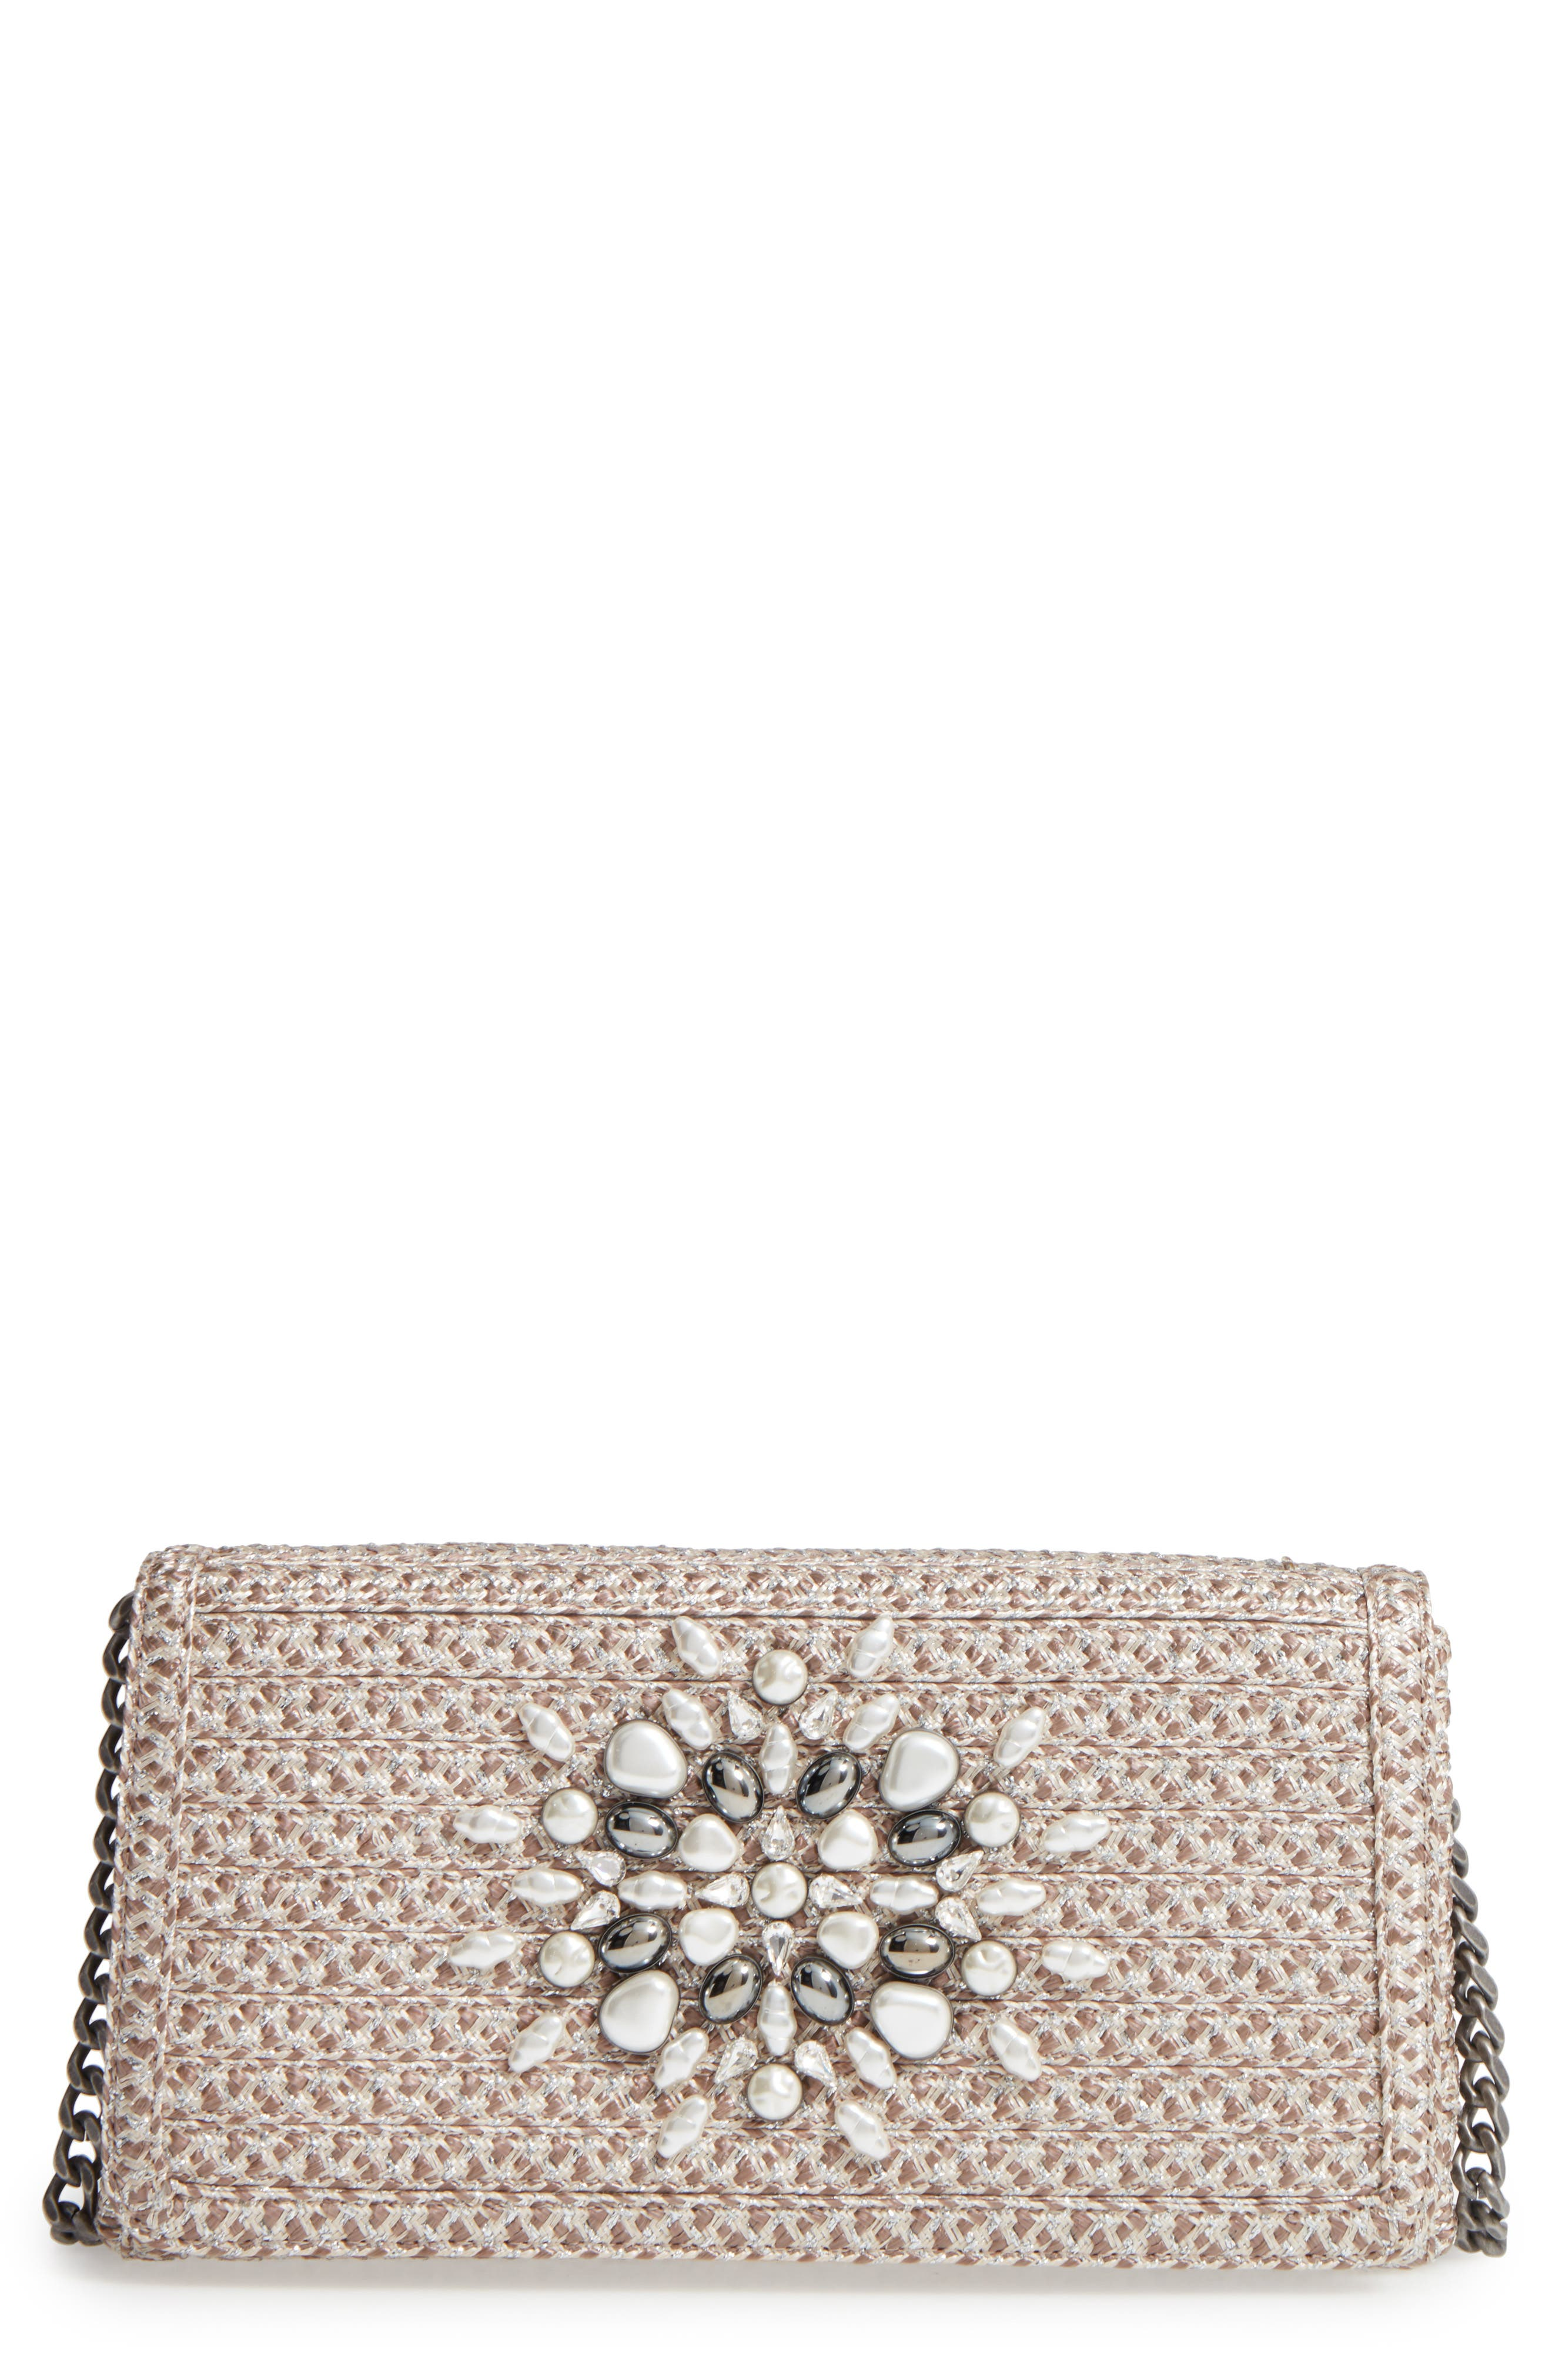 ERIC JAVITS DEVI EMBELLISHED CLUTCH - GREY